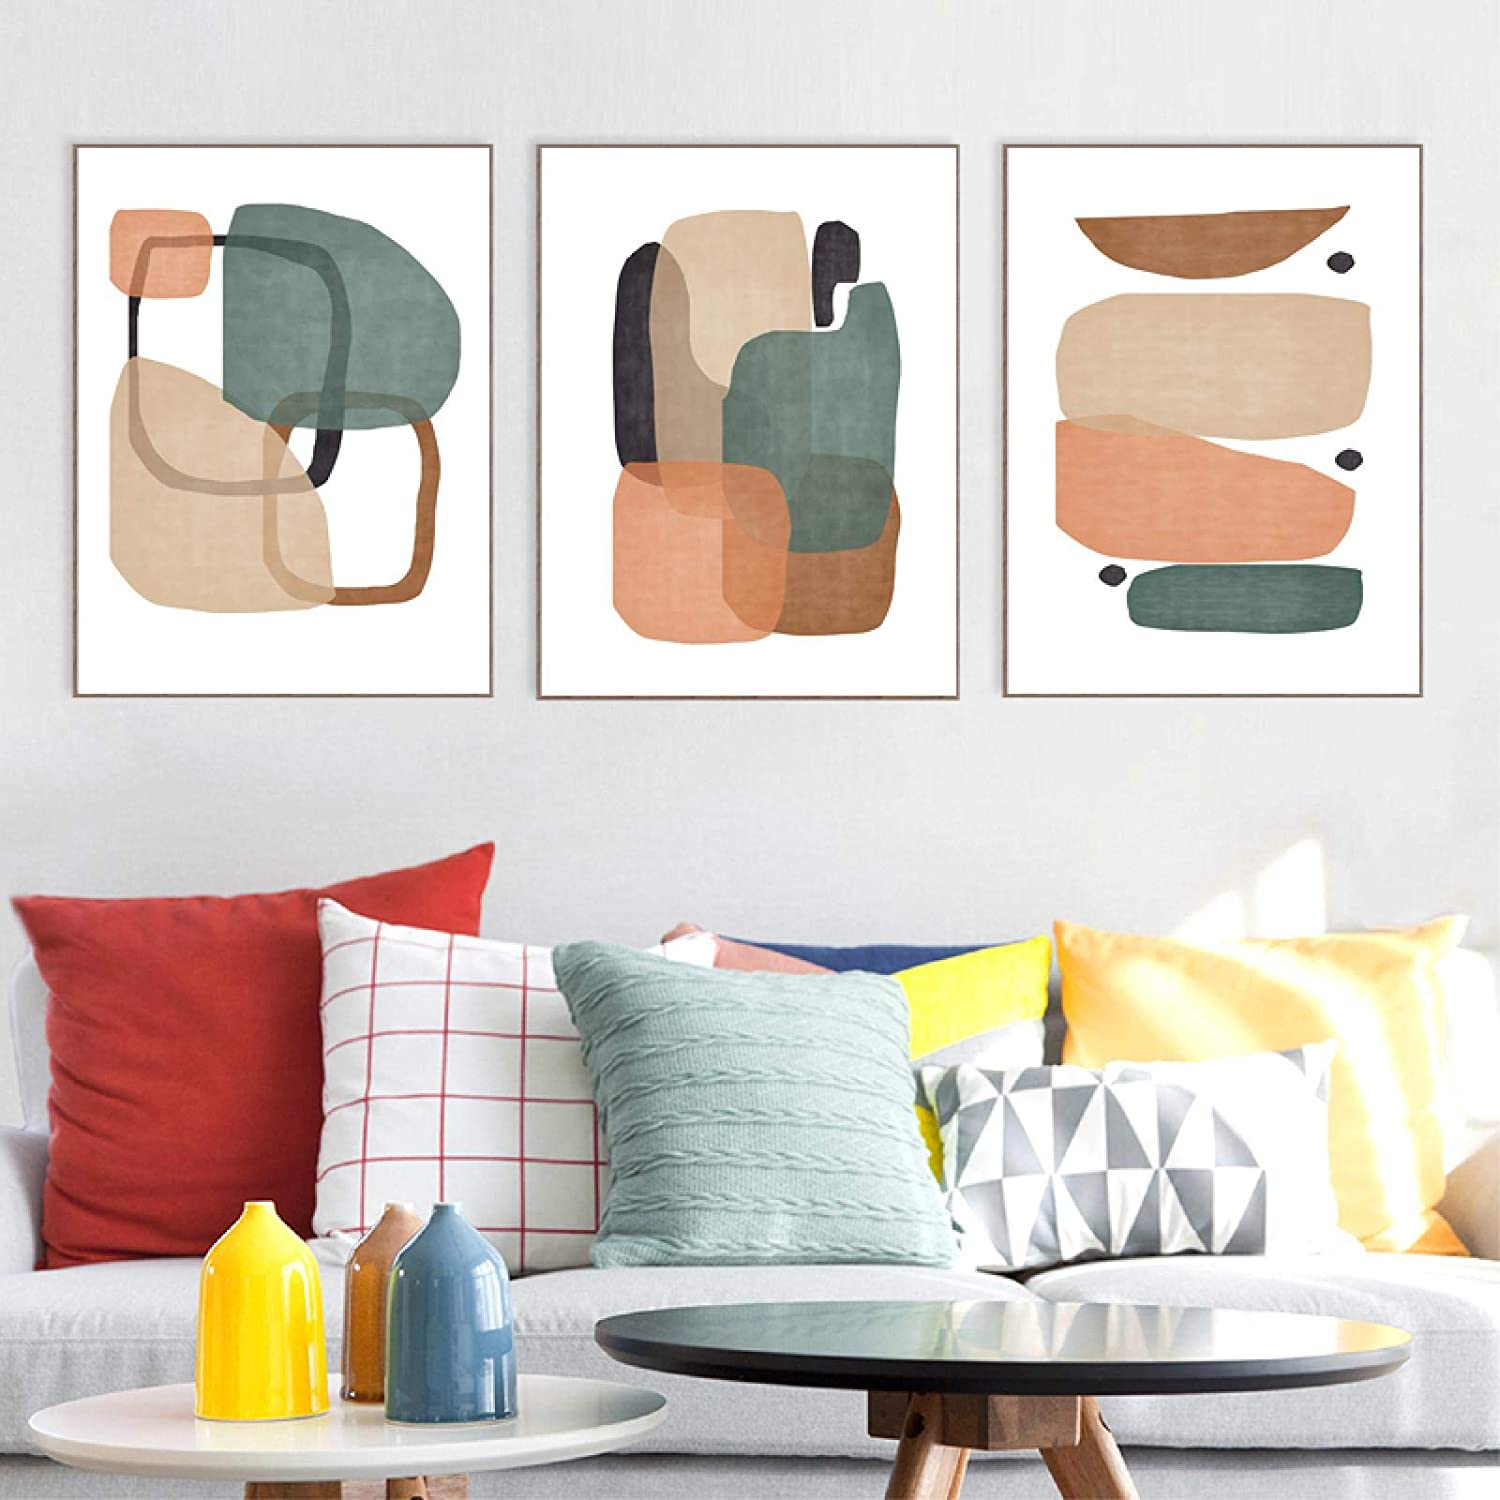 NFXOC Green Modern Orange Abstract Geometric Trio Art Posters and Prints Minimalist Wall Art Painting Pictures for Home Decor (40x60cm) 3pcs Frameless